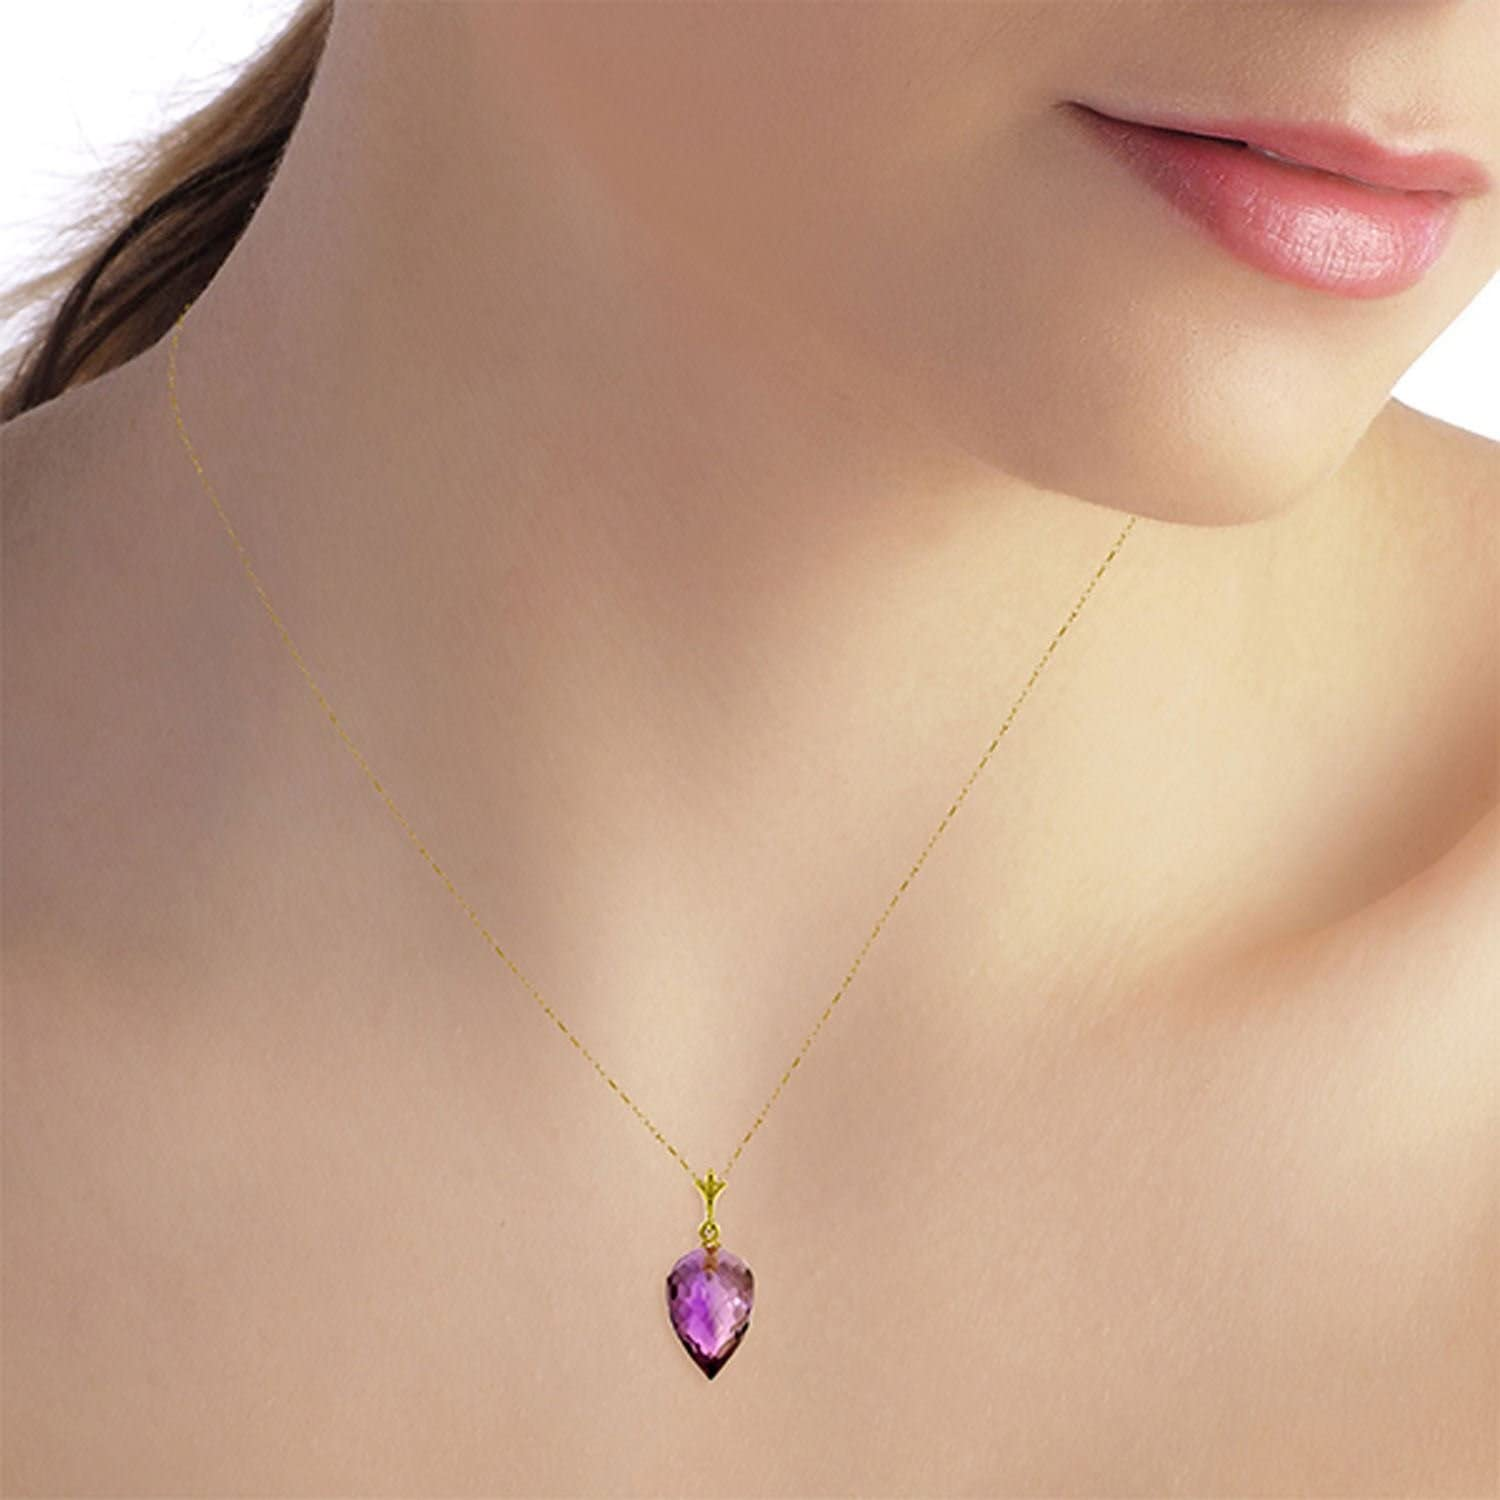 ALARRI 9.5 Carat 14K Solid Gold Necklace Pointy Briolette Drop Amethyst with 20 Inch Chain Length